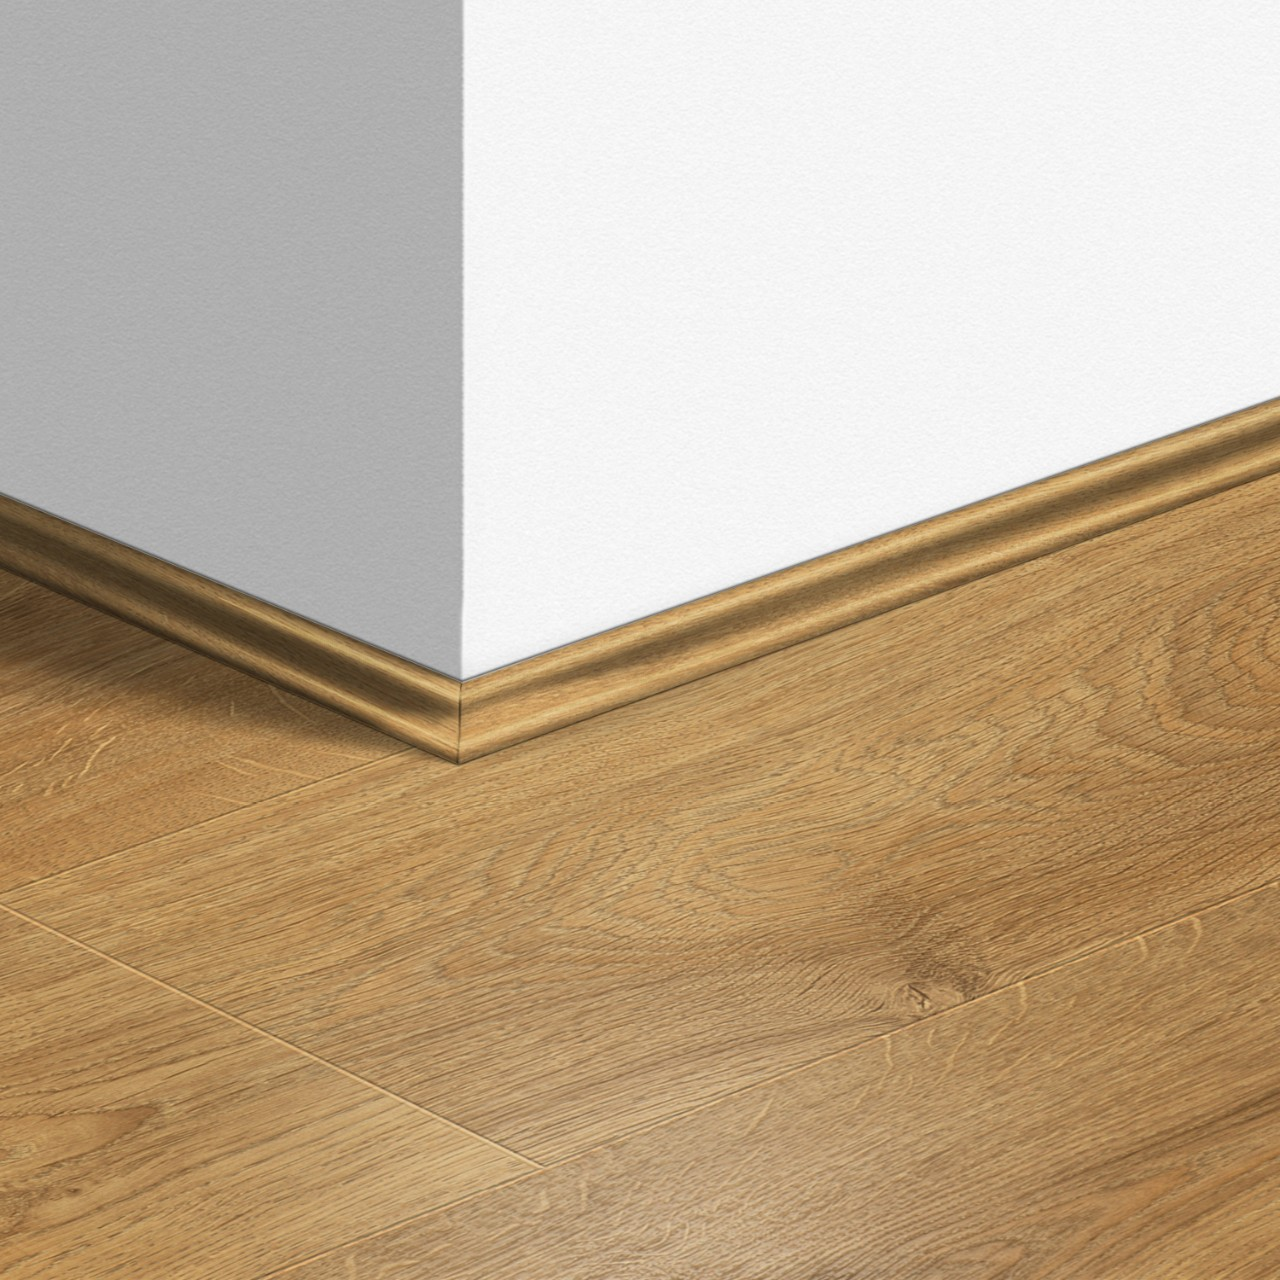 QSSCOT Laminate Accessories Cambridge oak natural QSSCOT01662